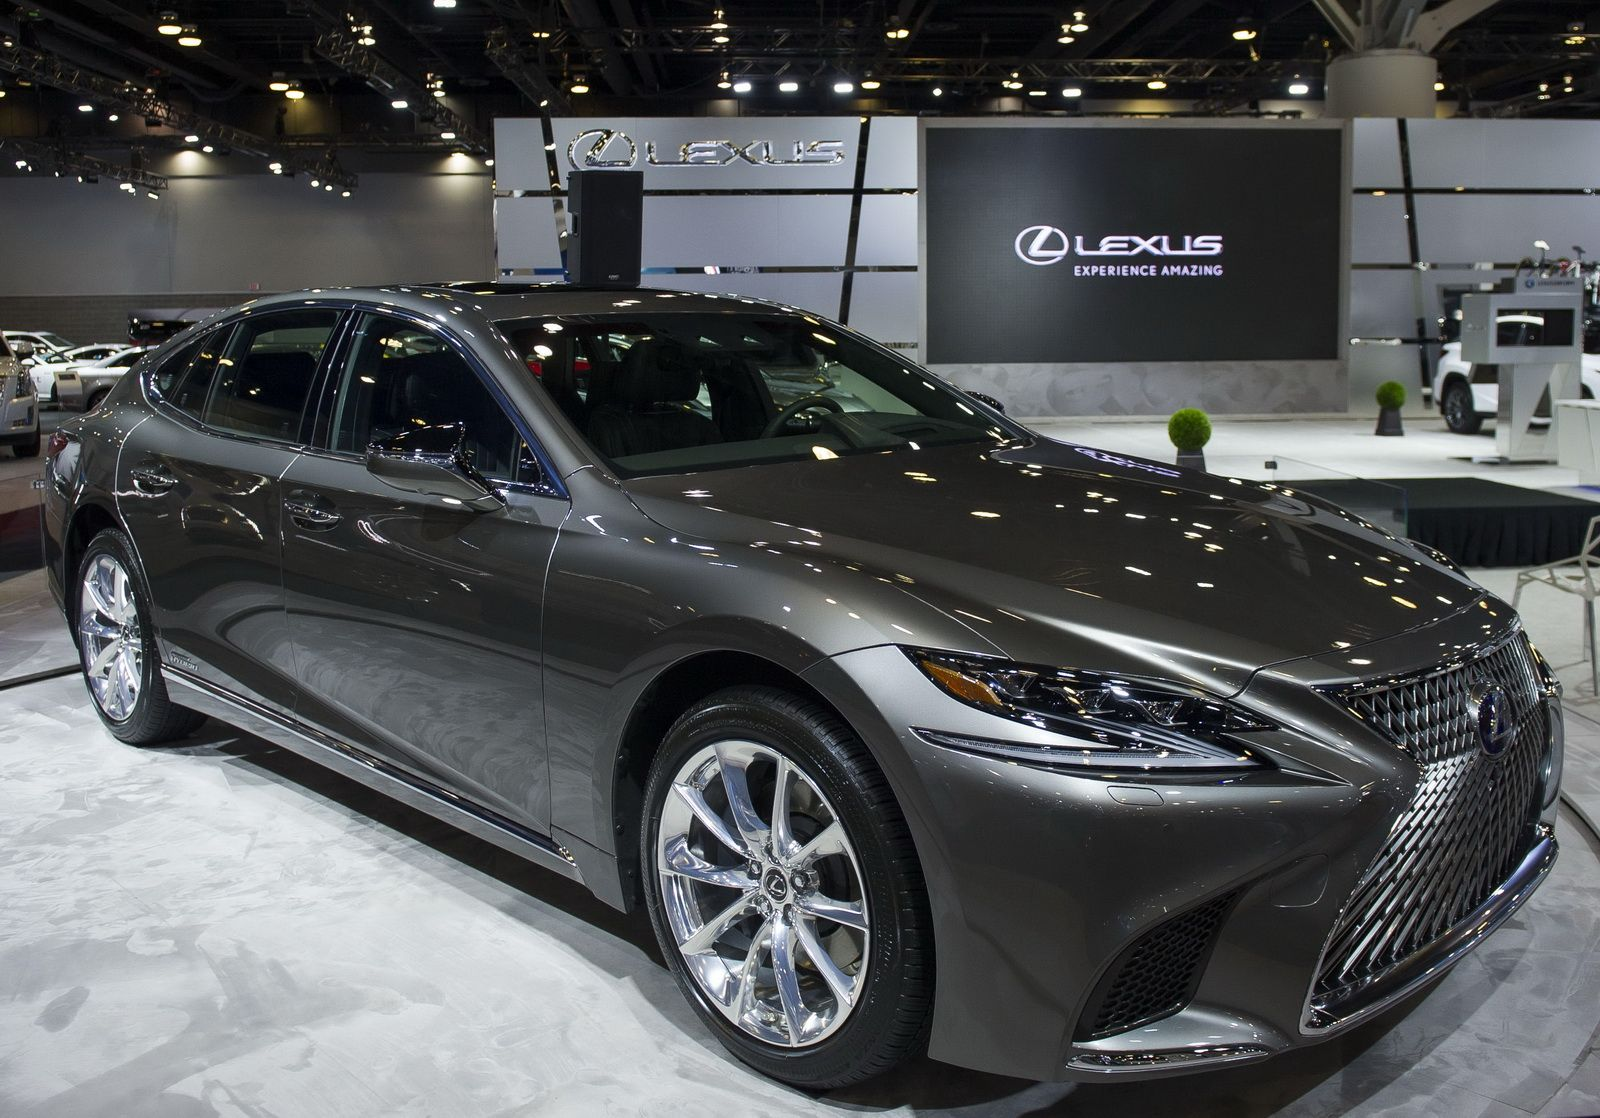 Lexus Ls H Redesign Release Date In The  Geneva Engine Display Lexus Offered The Next Of Its Two Brand Name New Ls Flagship Sedans